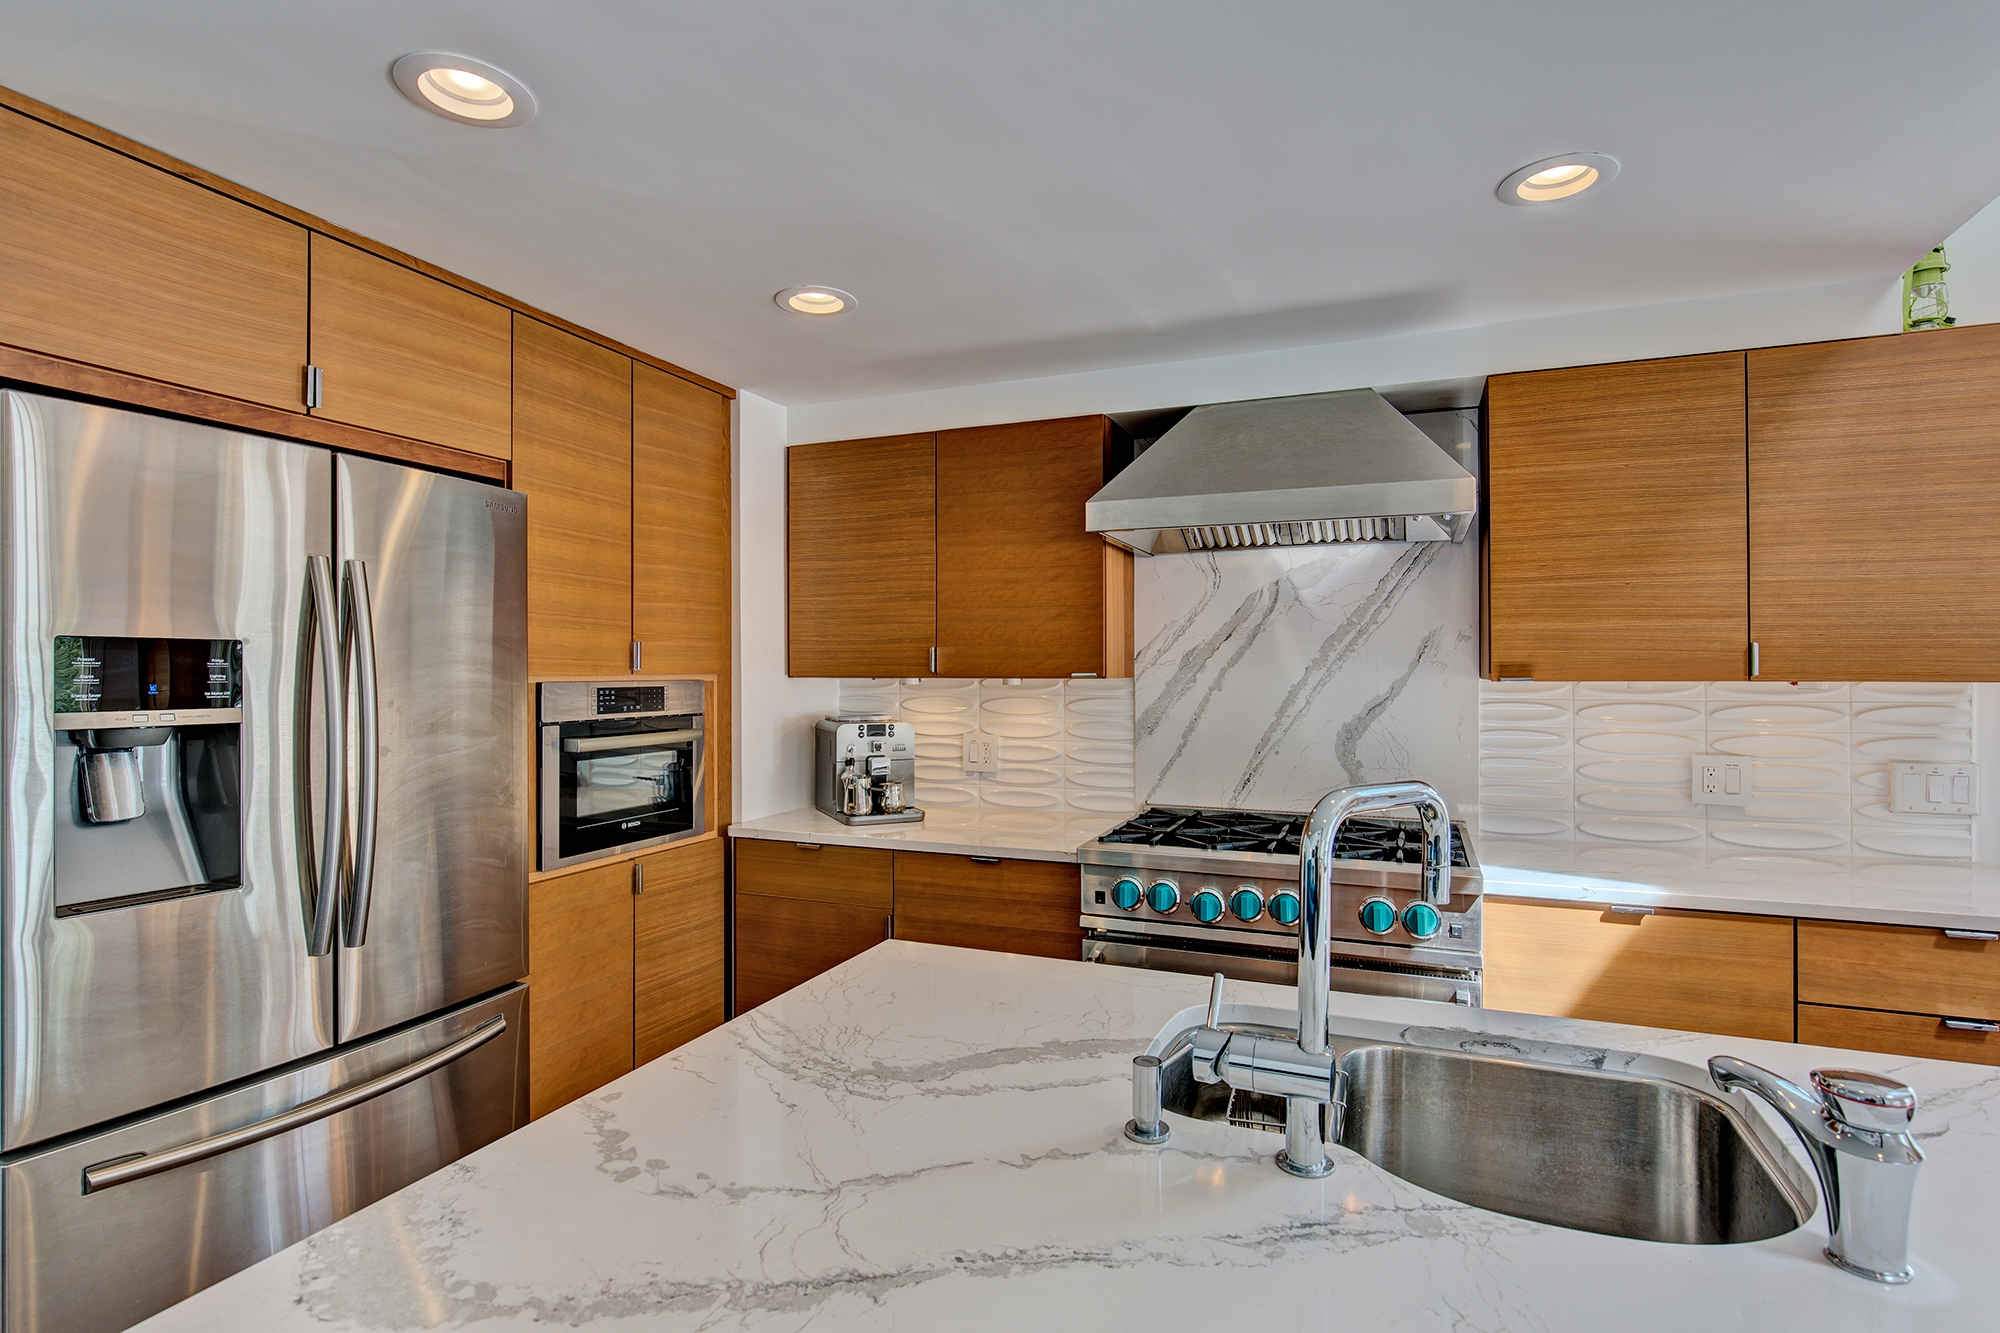 Stained Kitchen Cabinets in Sienna by ShowplaceEVO - view 1